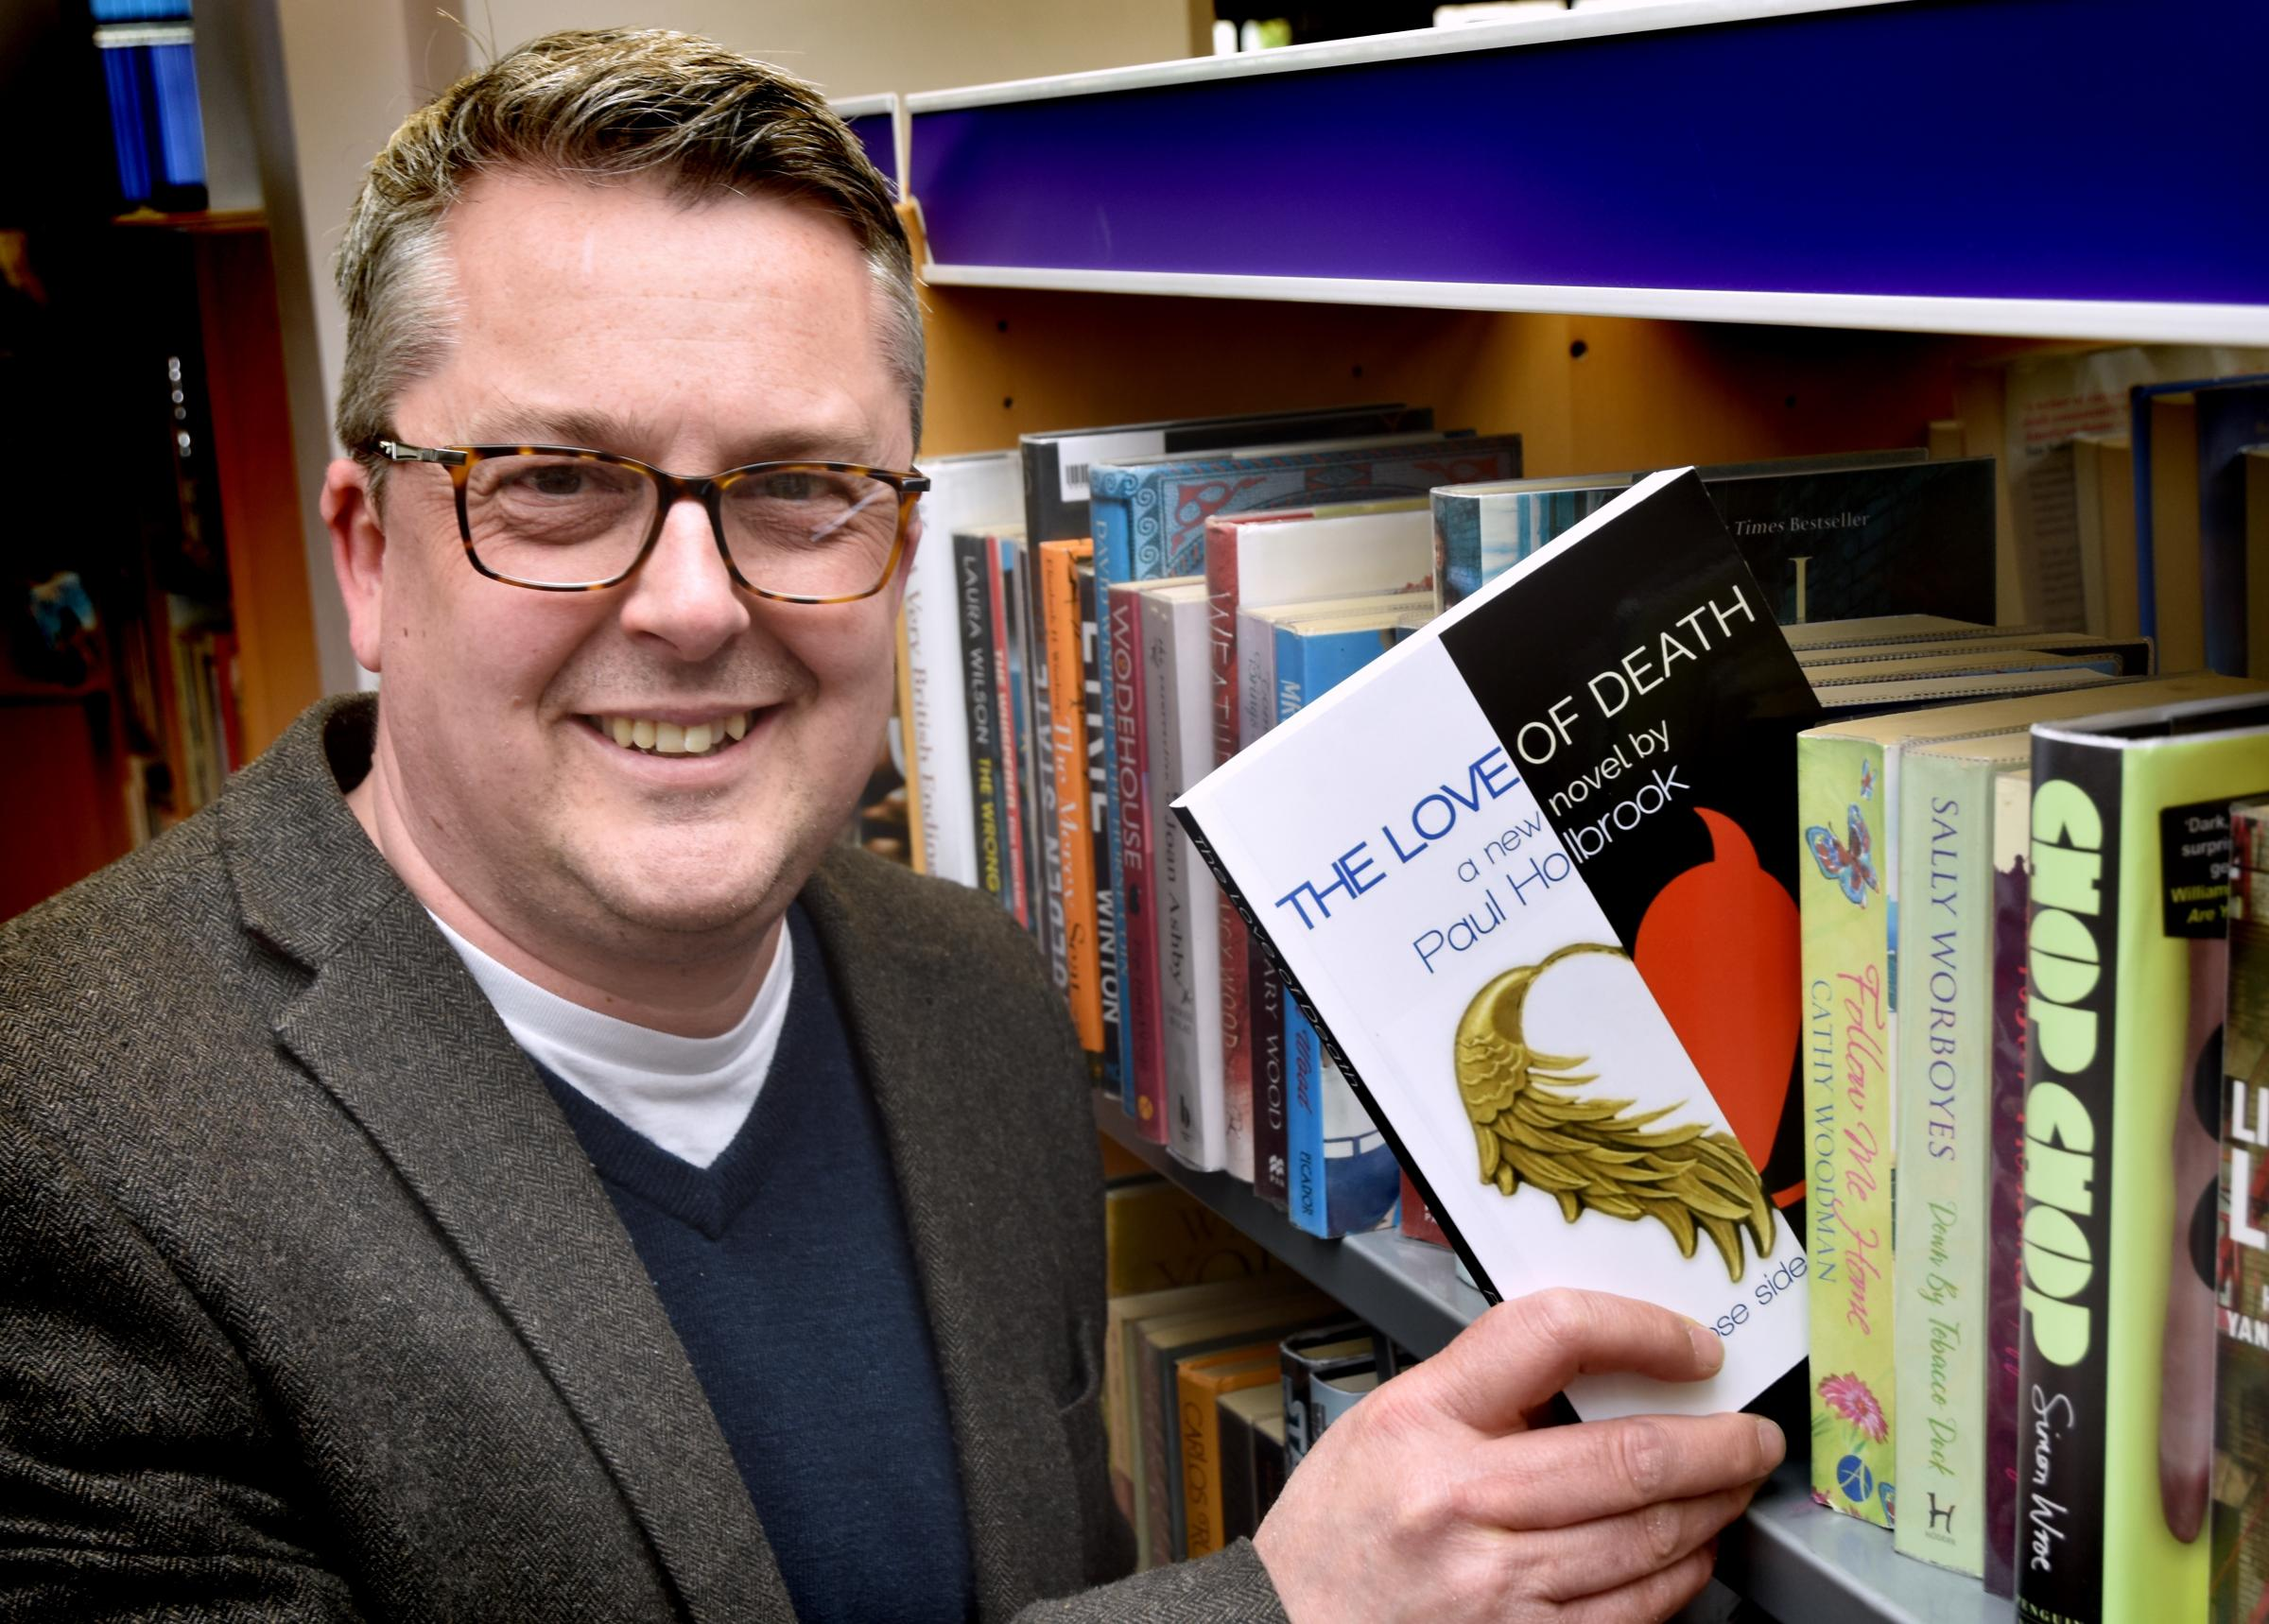 Author Paul Holbrook with his book new book The Love of Death, which has just been published      Picture: Frank Dwyer